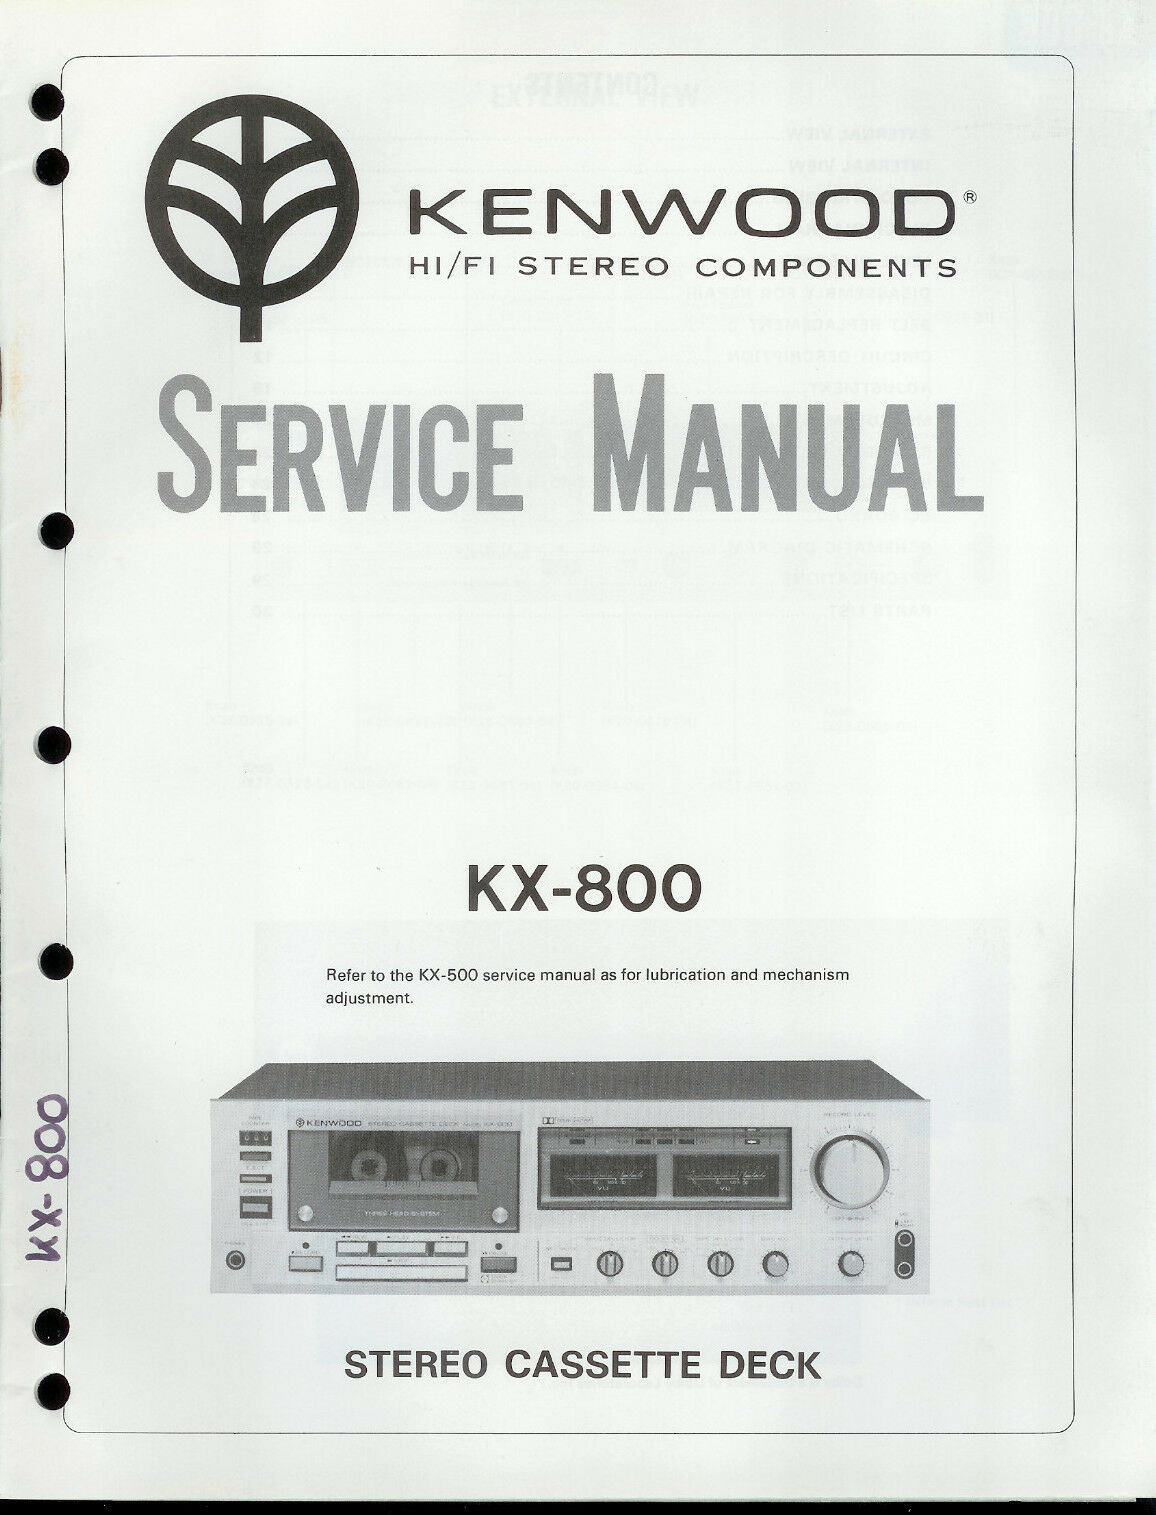 Original Factory Kenwood KX-800 Cassette Deck Service/Repair Manual 1 of  1Only 1 available ...